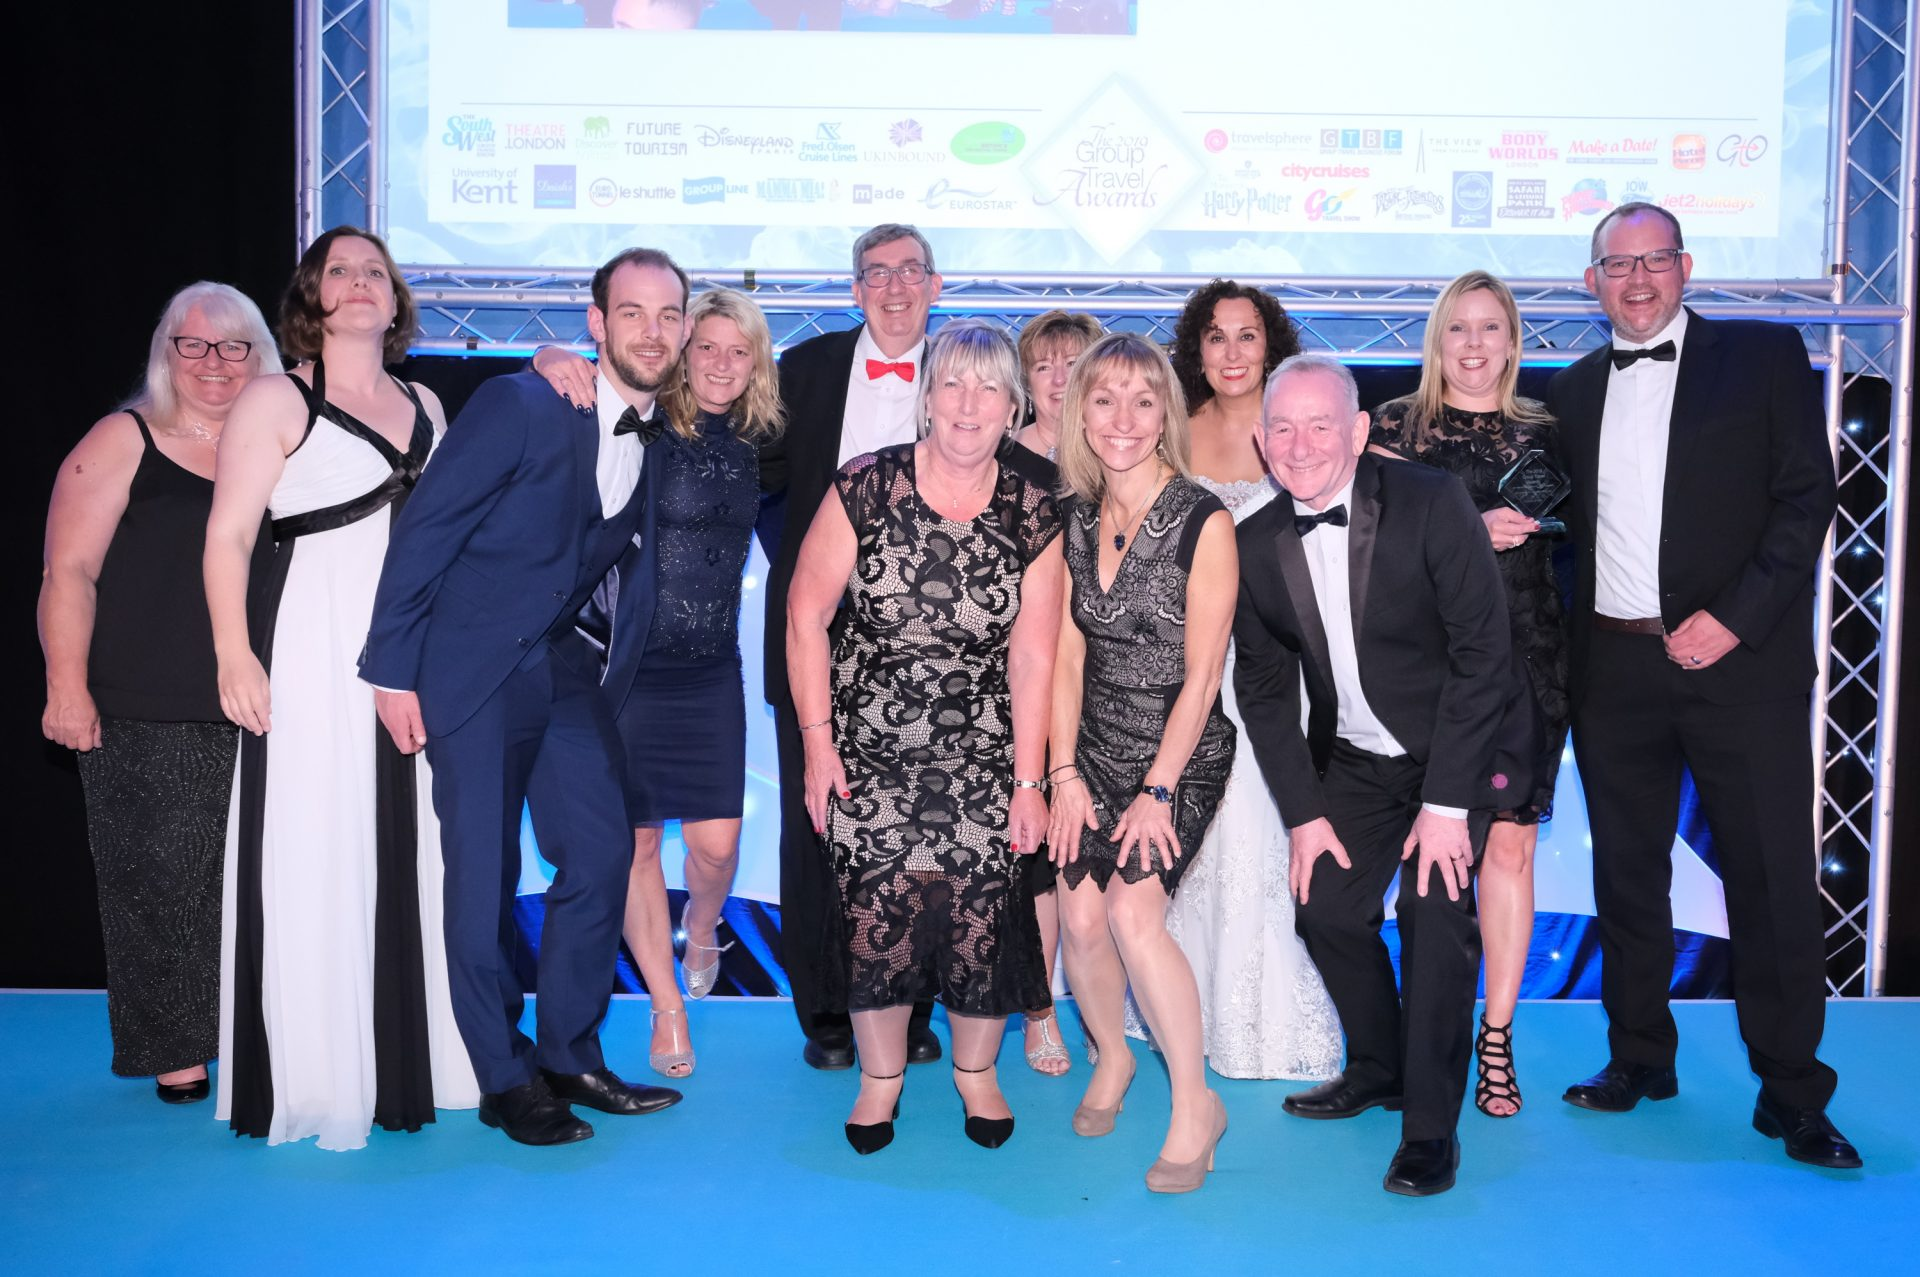 The University has won the Best University Accommodation for Groups award for the twelfth year in a row at the Group Travel Organiser's Awards.